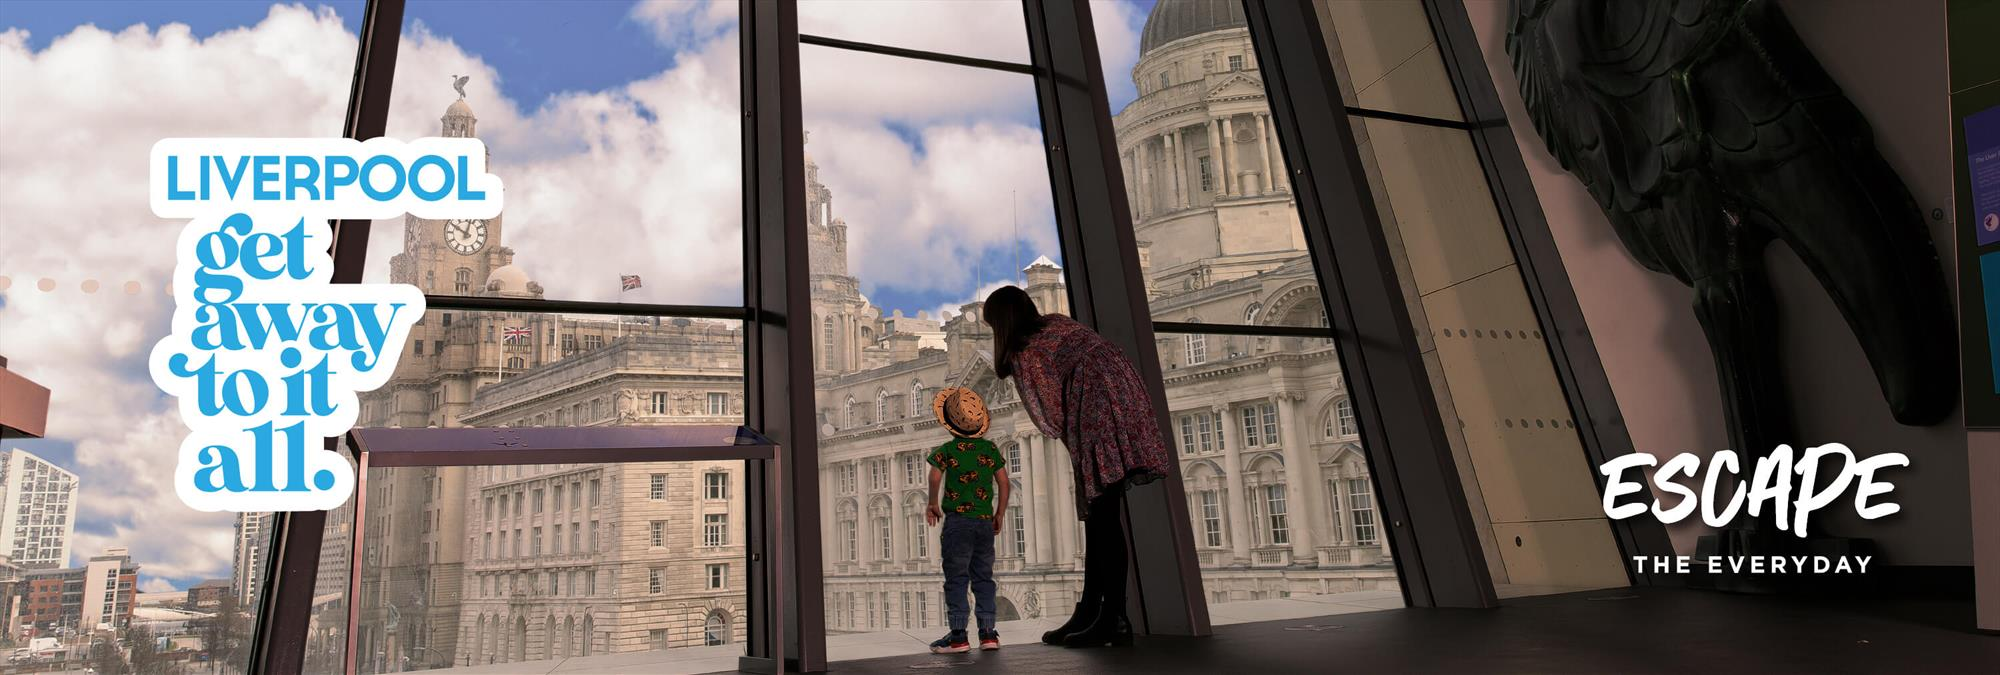 A guardian and child look out from the large window in the Museum of Liverpool over to the Pier Head and the grand Three Graces buildings.